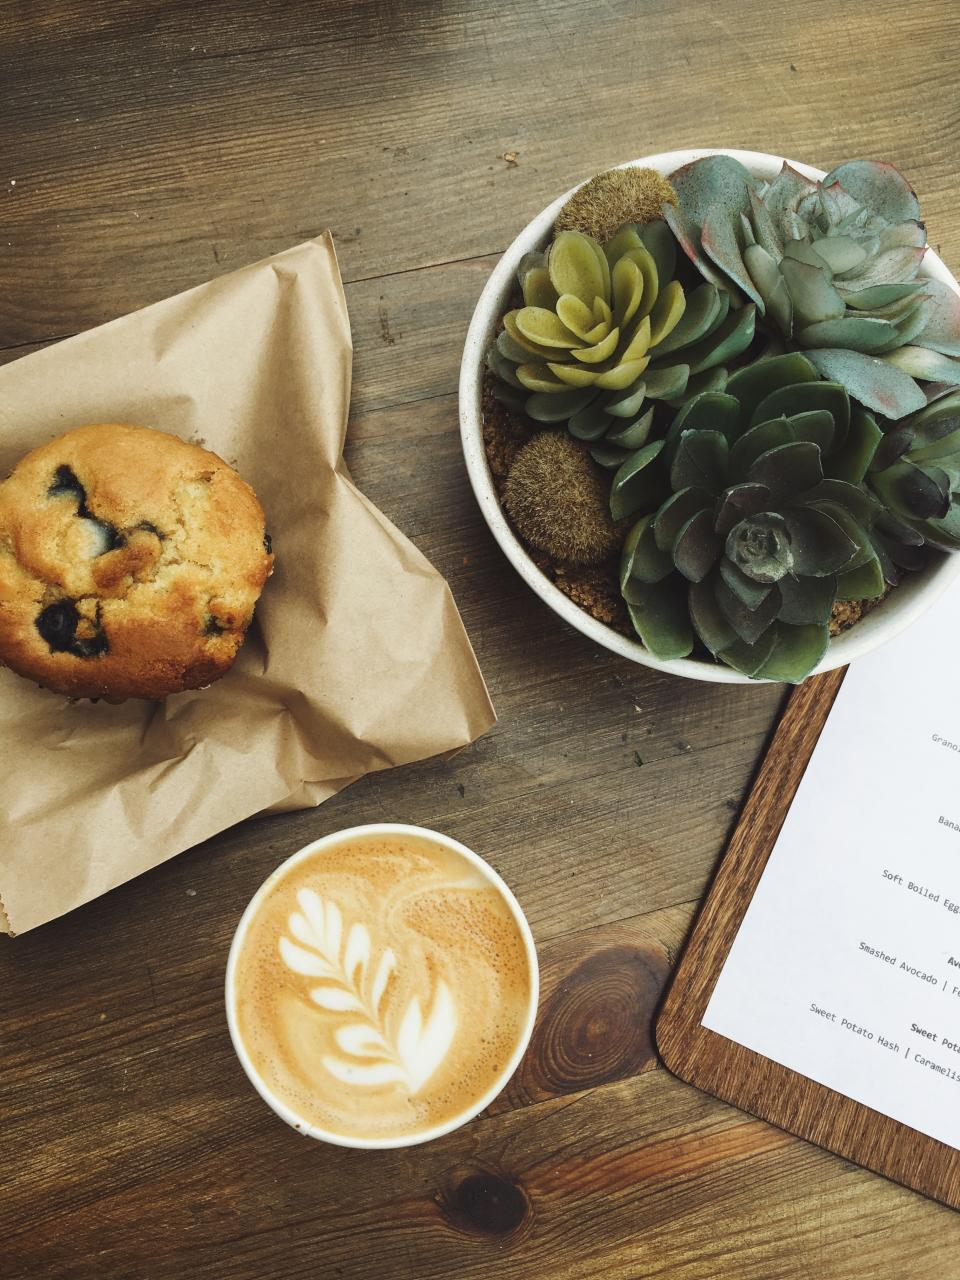 menu boar wooden table coffee latte hot drink breakfast bread muffin food plant